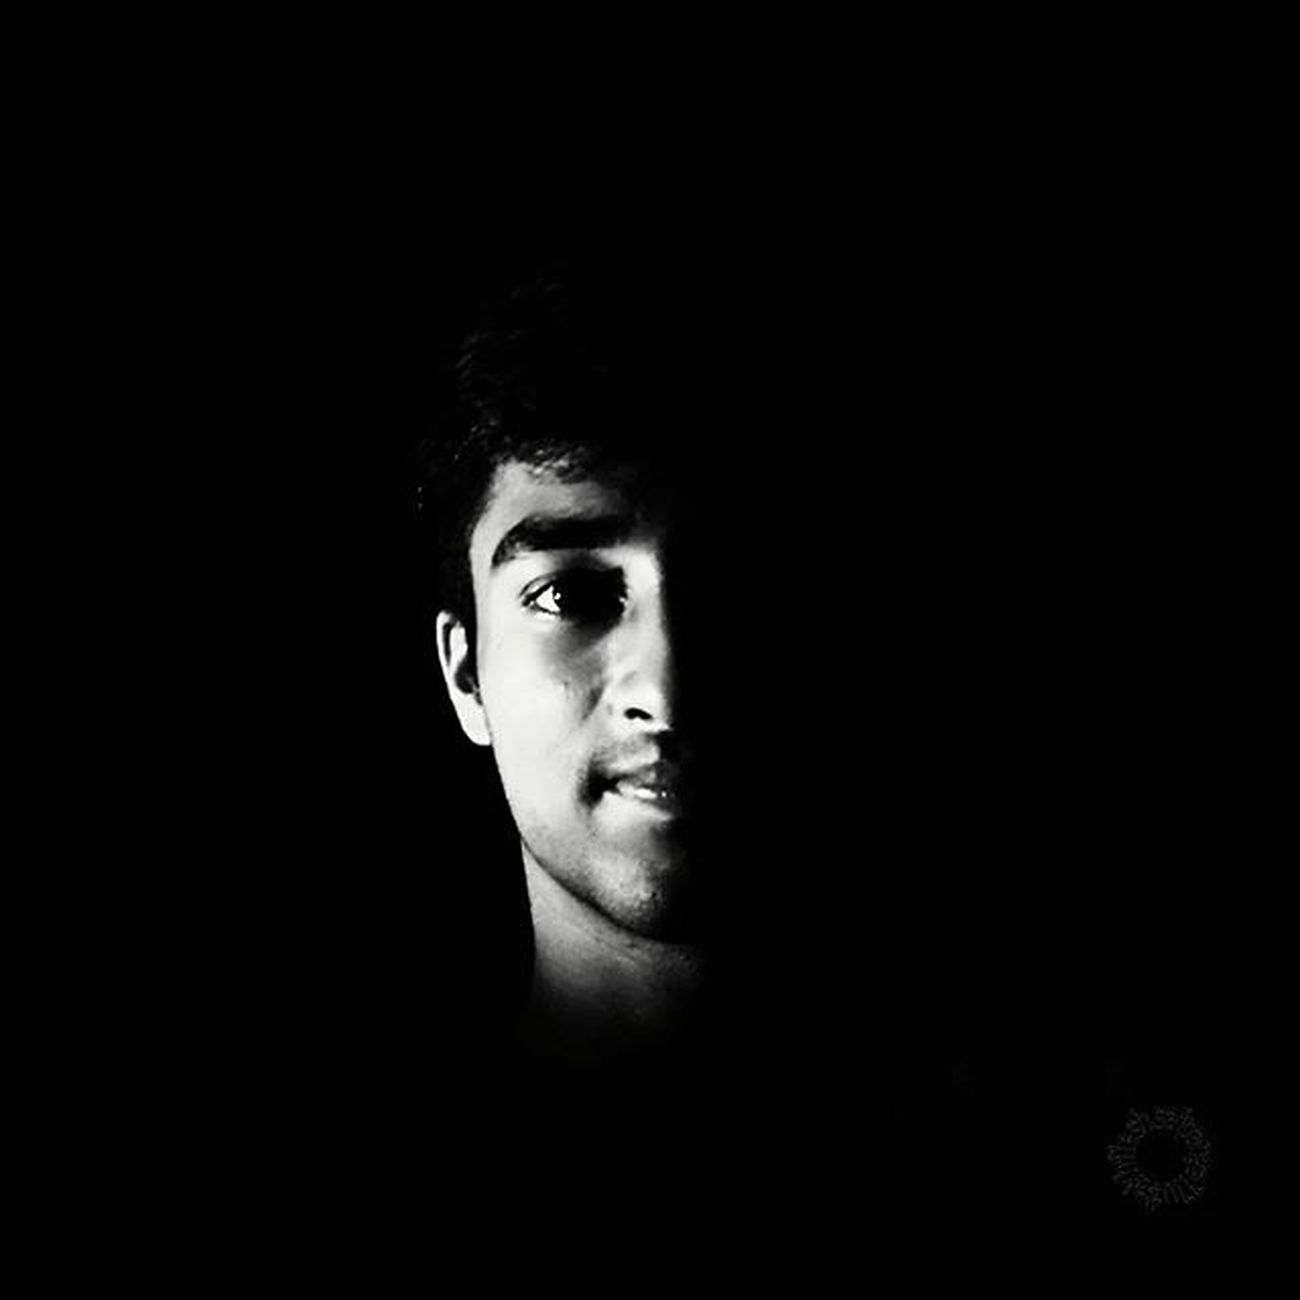 Black and White love . . . . all creditz to yu @sha_sonali 📷 :Xiaomi Redmi Note Prime Edit:Aviary Blackandwhite Bnw Me Dark Night Intothedark Flash Flashlight Beautifulmatters Topmobilegraphy Onlyphone Phoneonly Mobilephotography Mypixeldiaries Indiaclicks Instapic Instadaily Intagram L4l Likeforlike Xiaomi Redmi Xiaomiphotography Mi